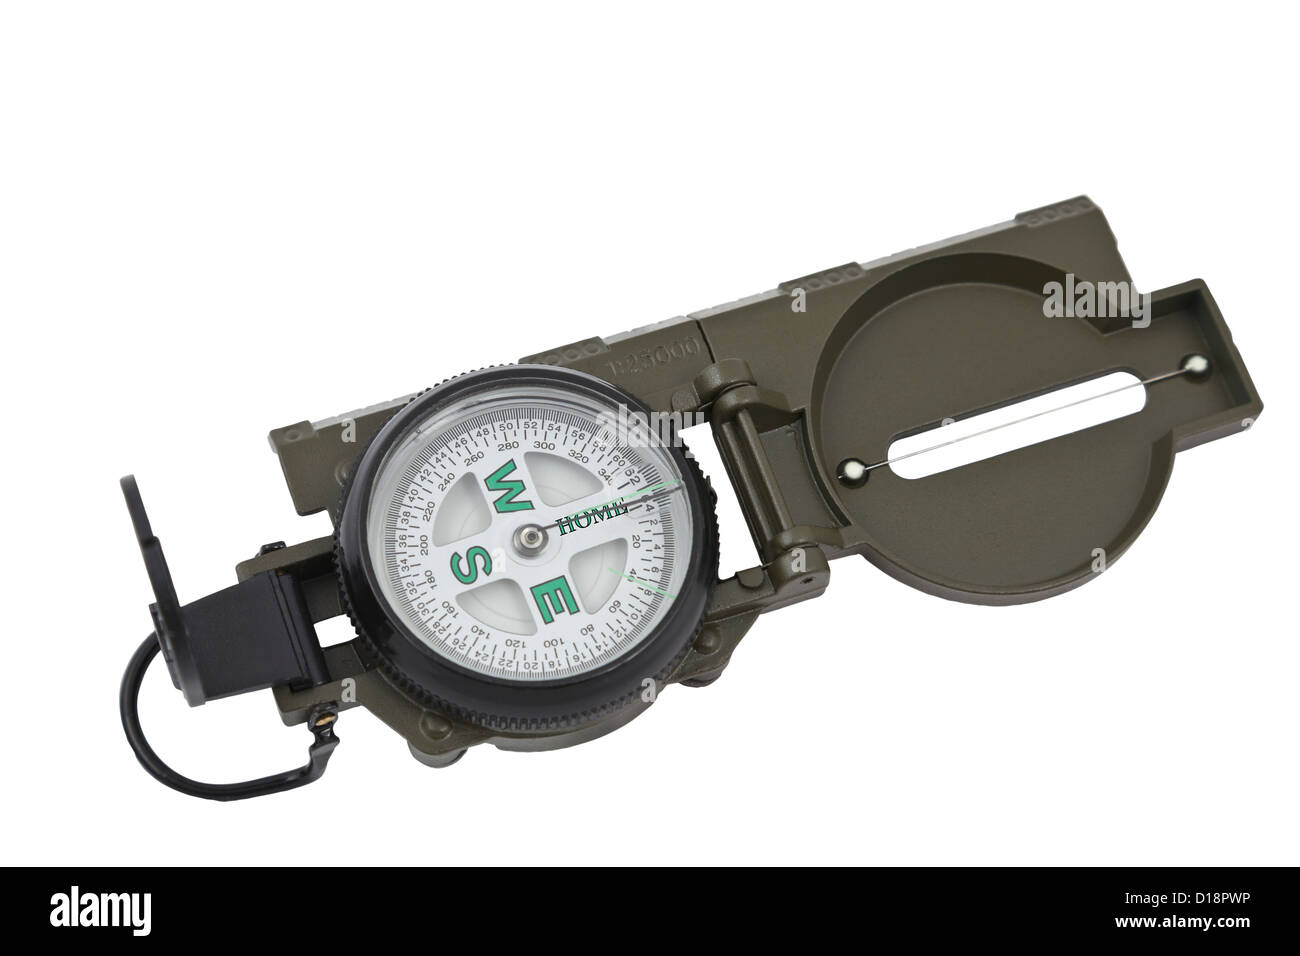 A military style compass pointing the way home - Stock Image